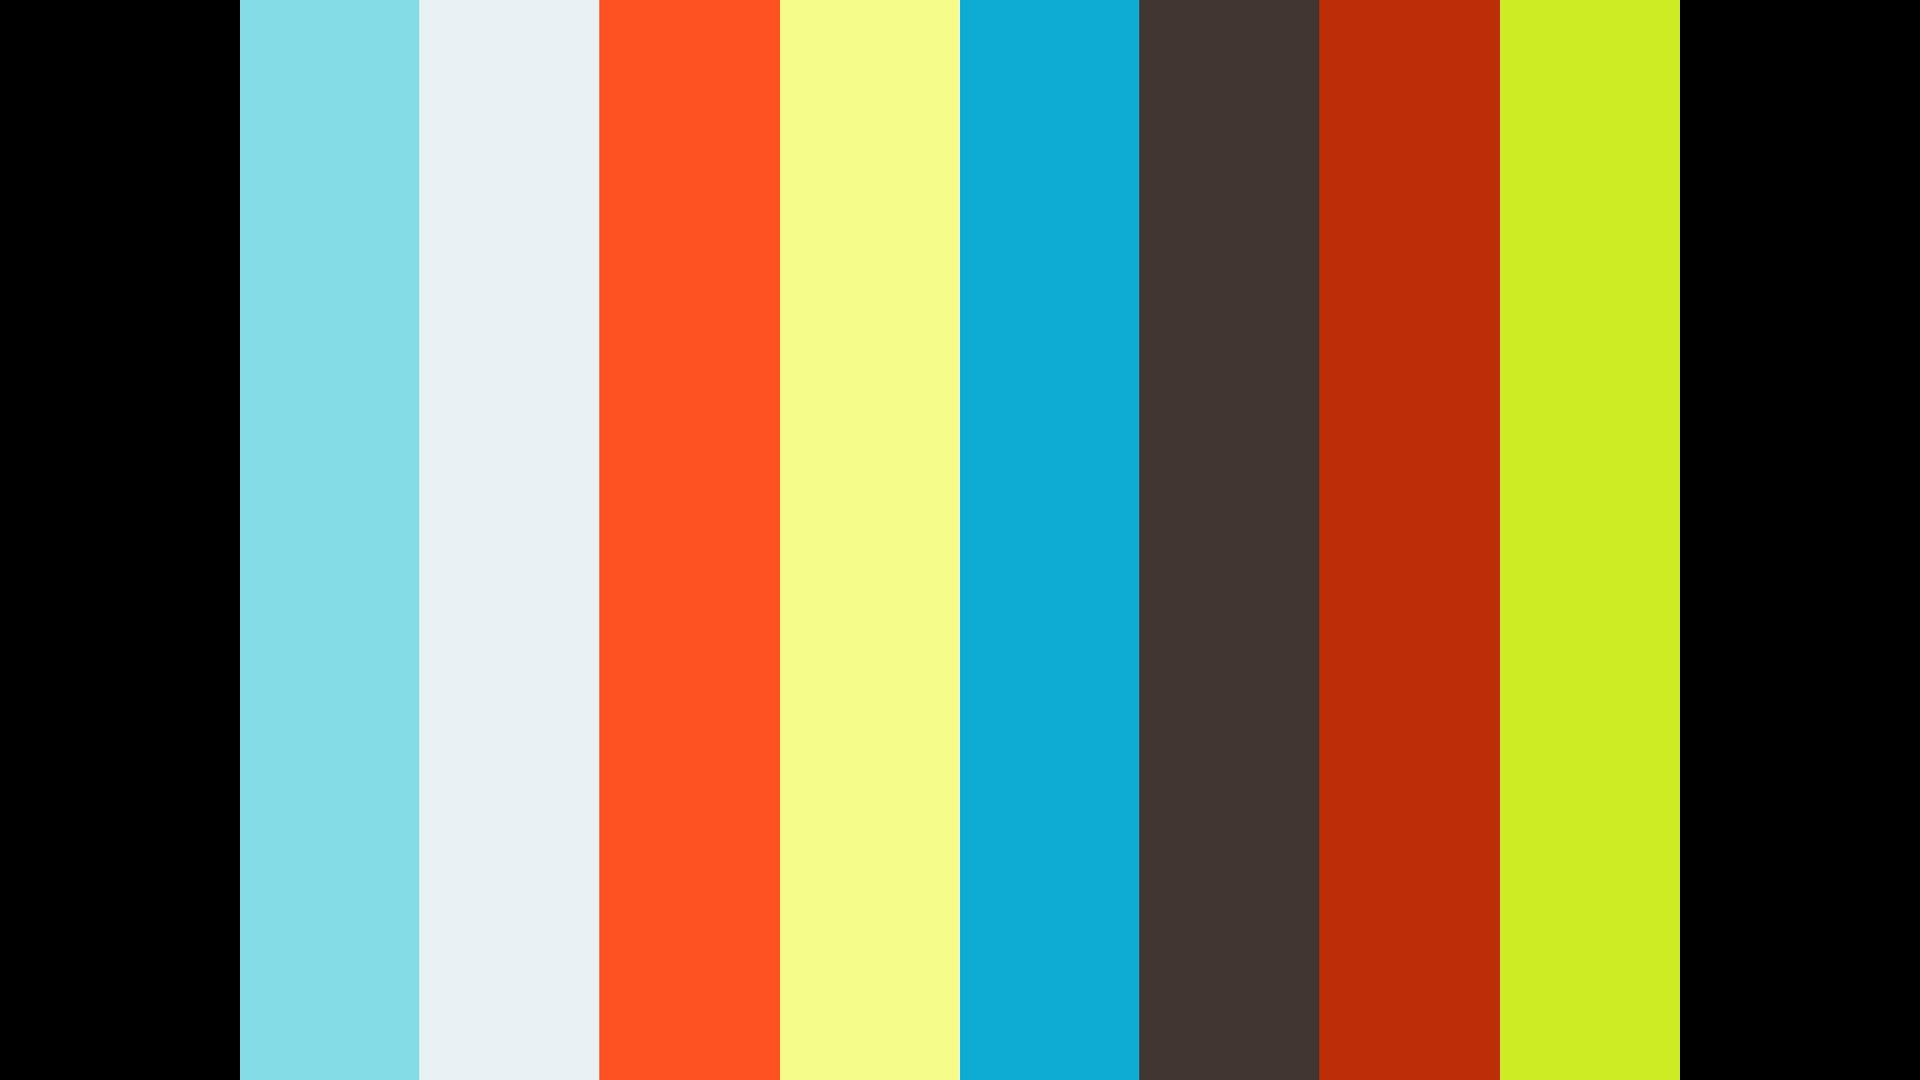 Introduction of Katja Diefenbach by Anna Tuschling [1, 1]